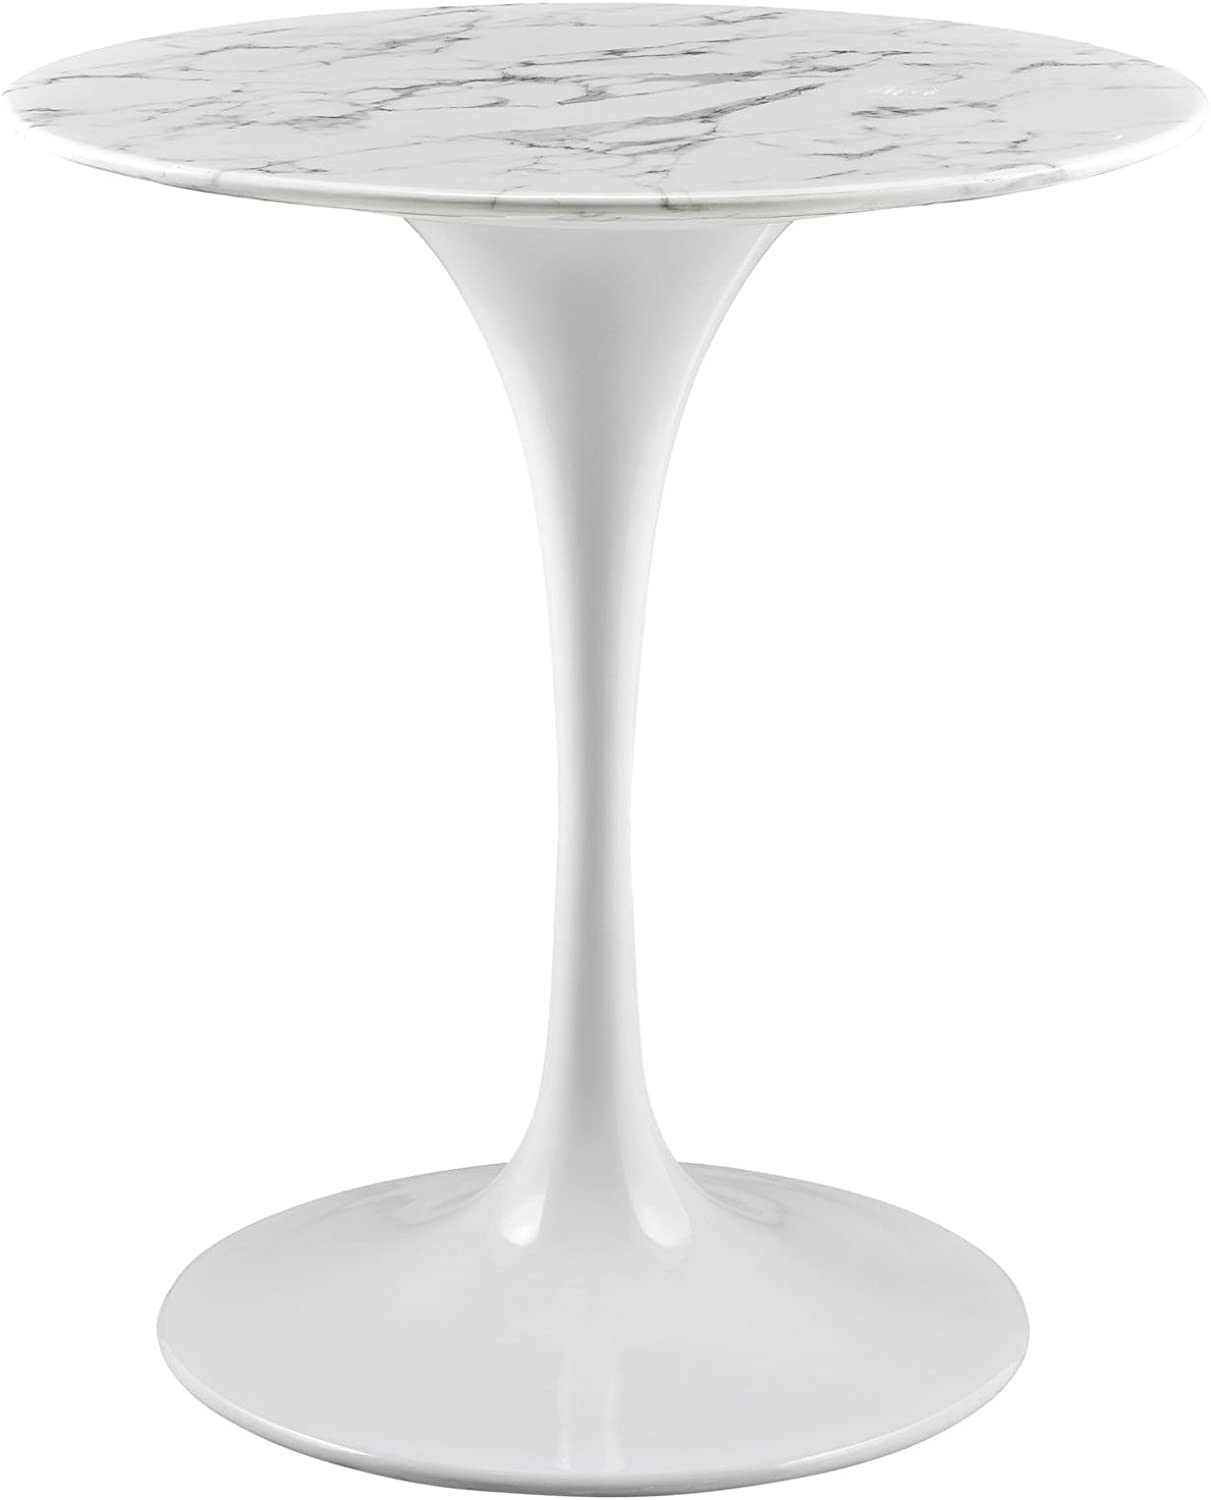 Modway Lippa Mid Century Modern 9 Inch Round Artificial Marble Dining  Table Top, White Base